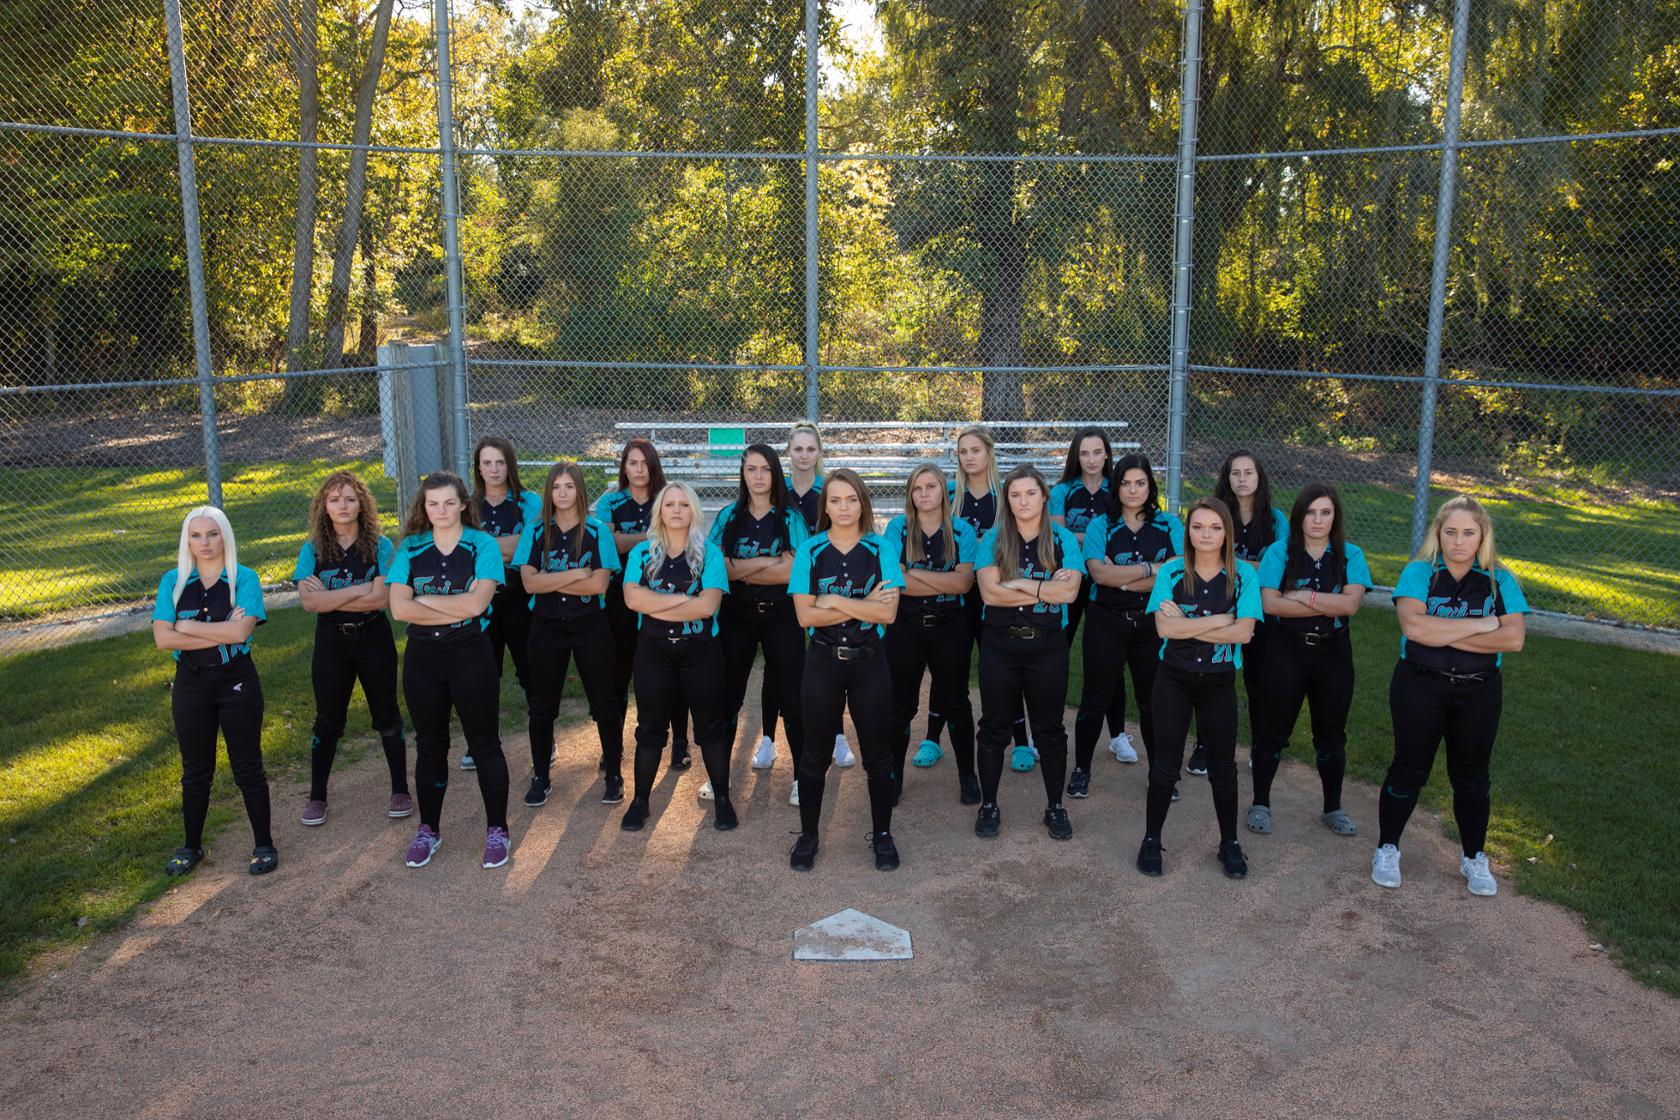 Tri-C softball team standing at home plate